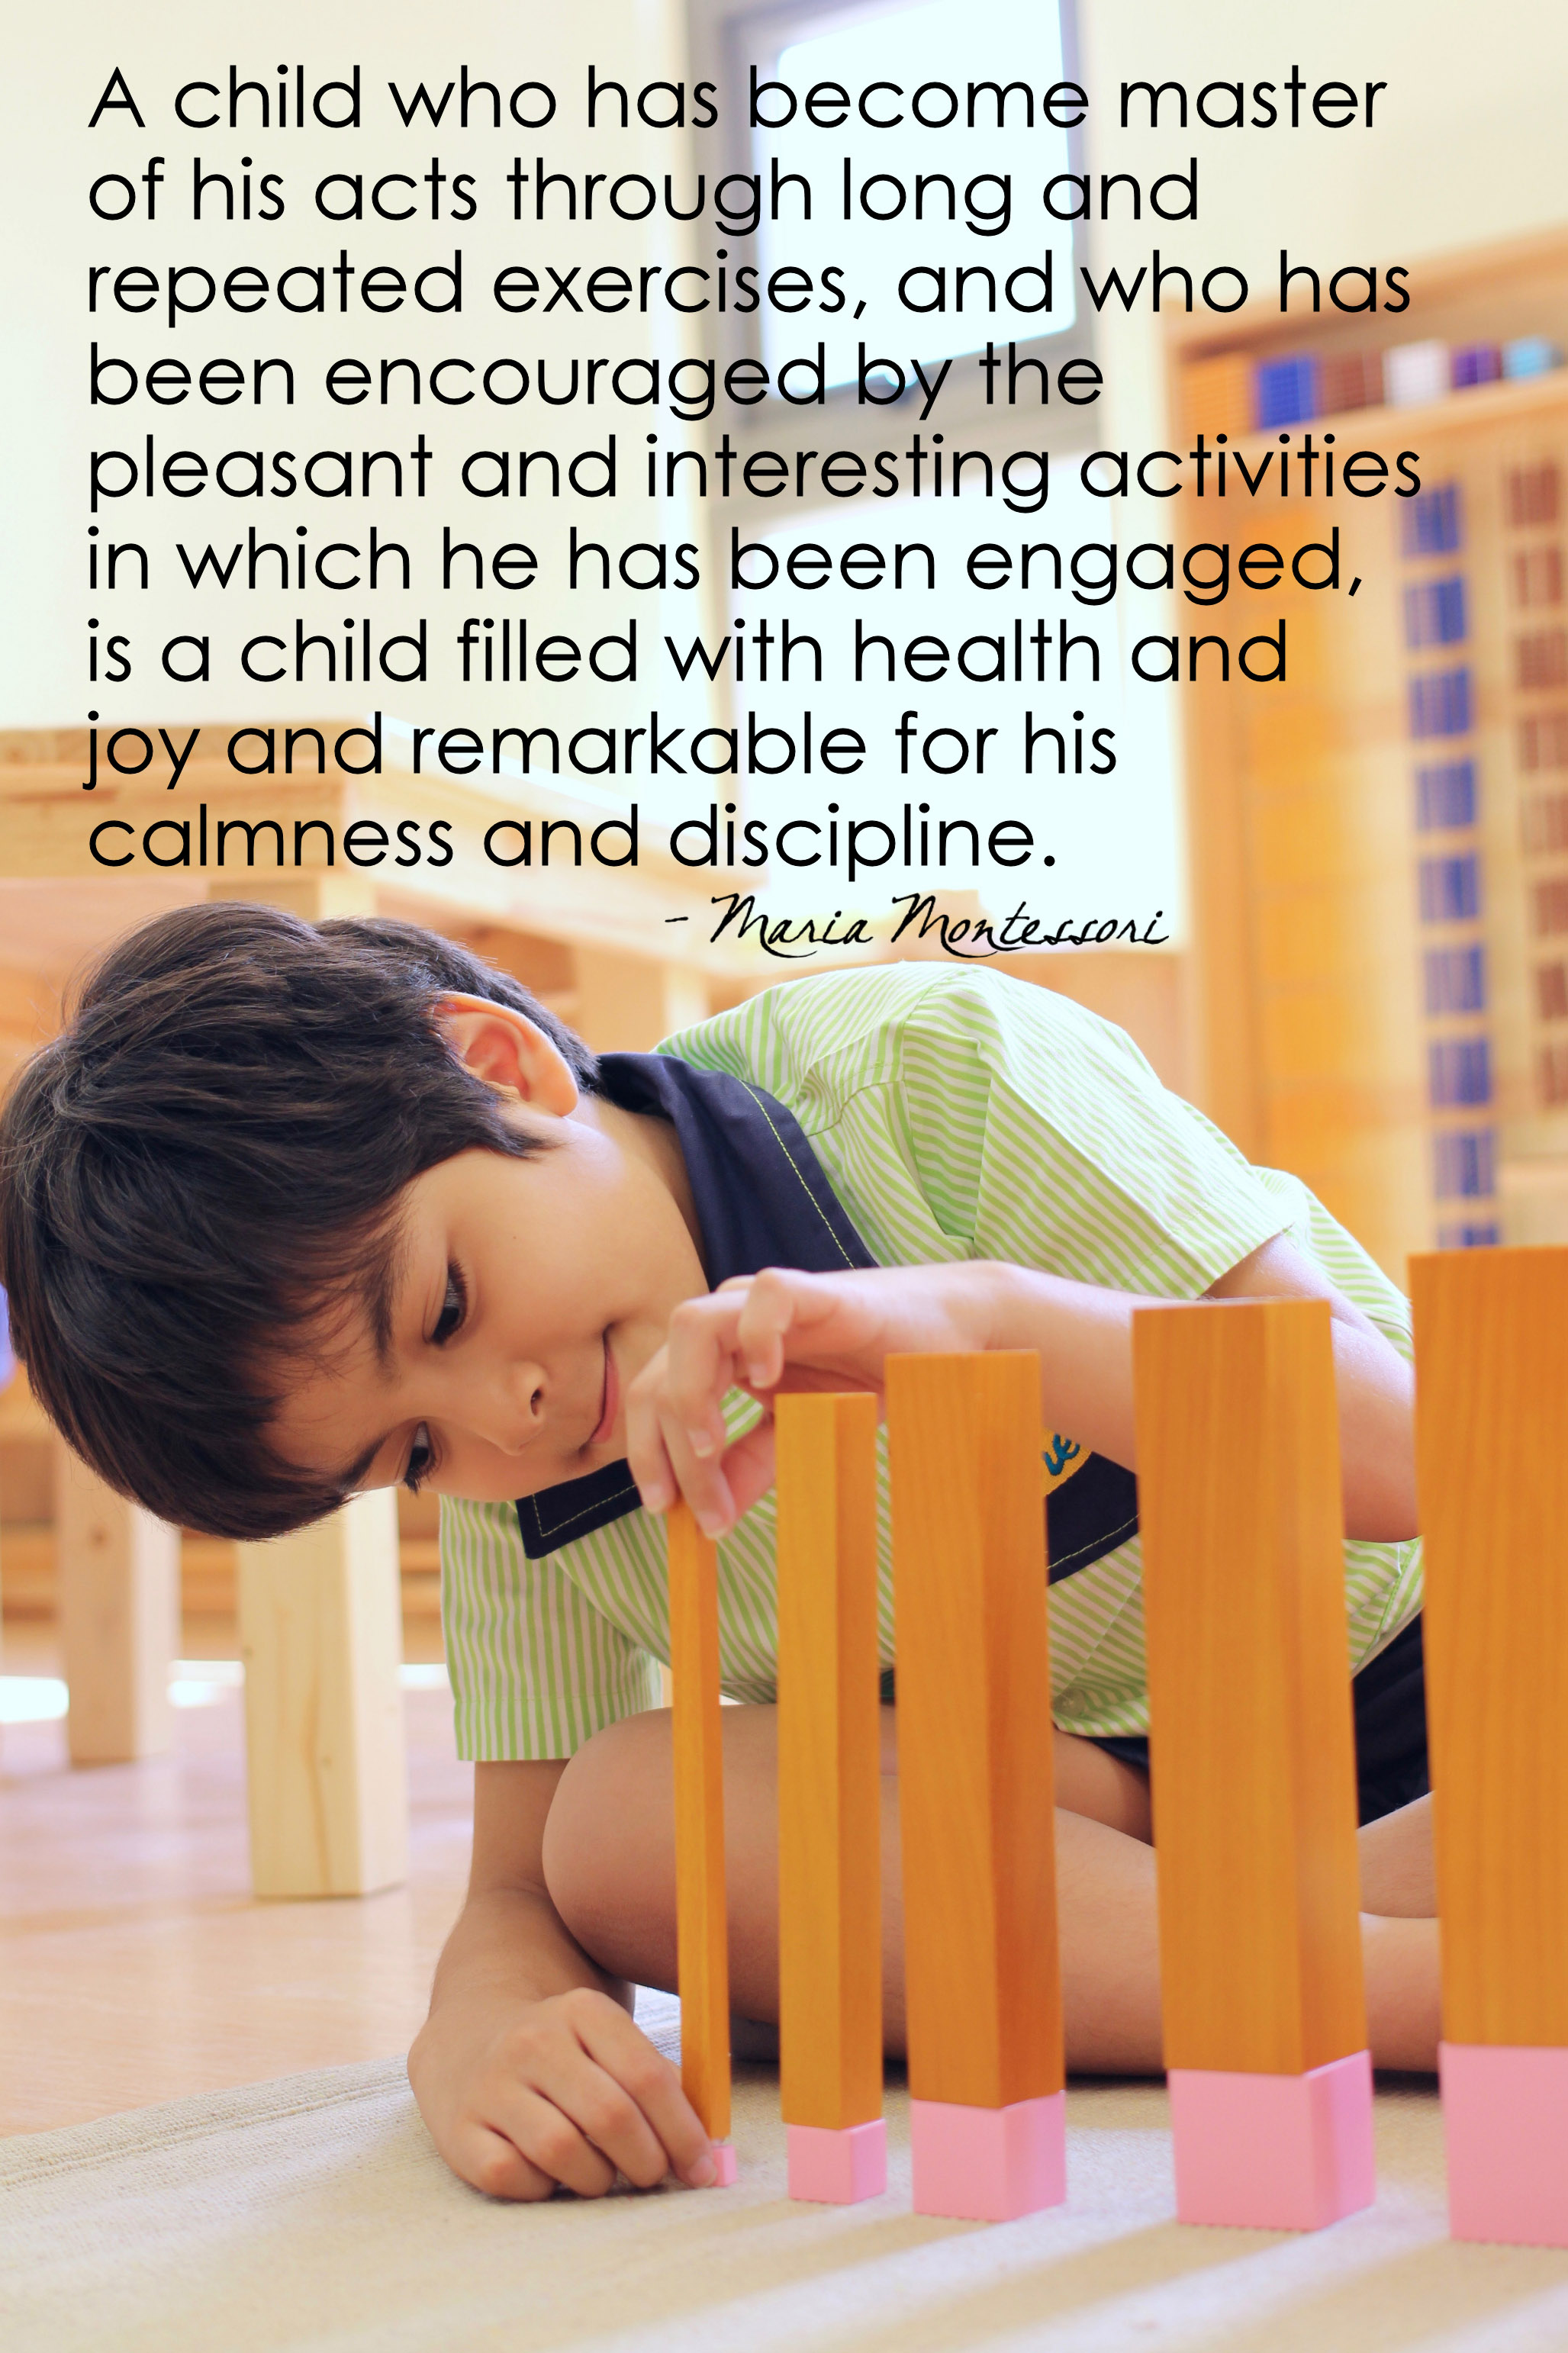 A Child Who Has Become Master Of His Acts Montessori Word